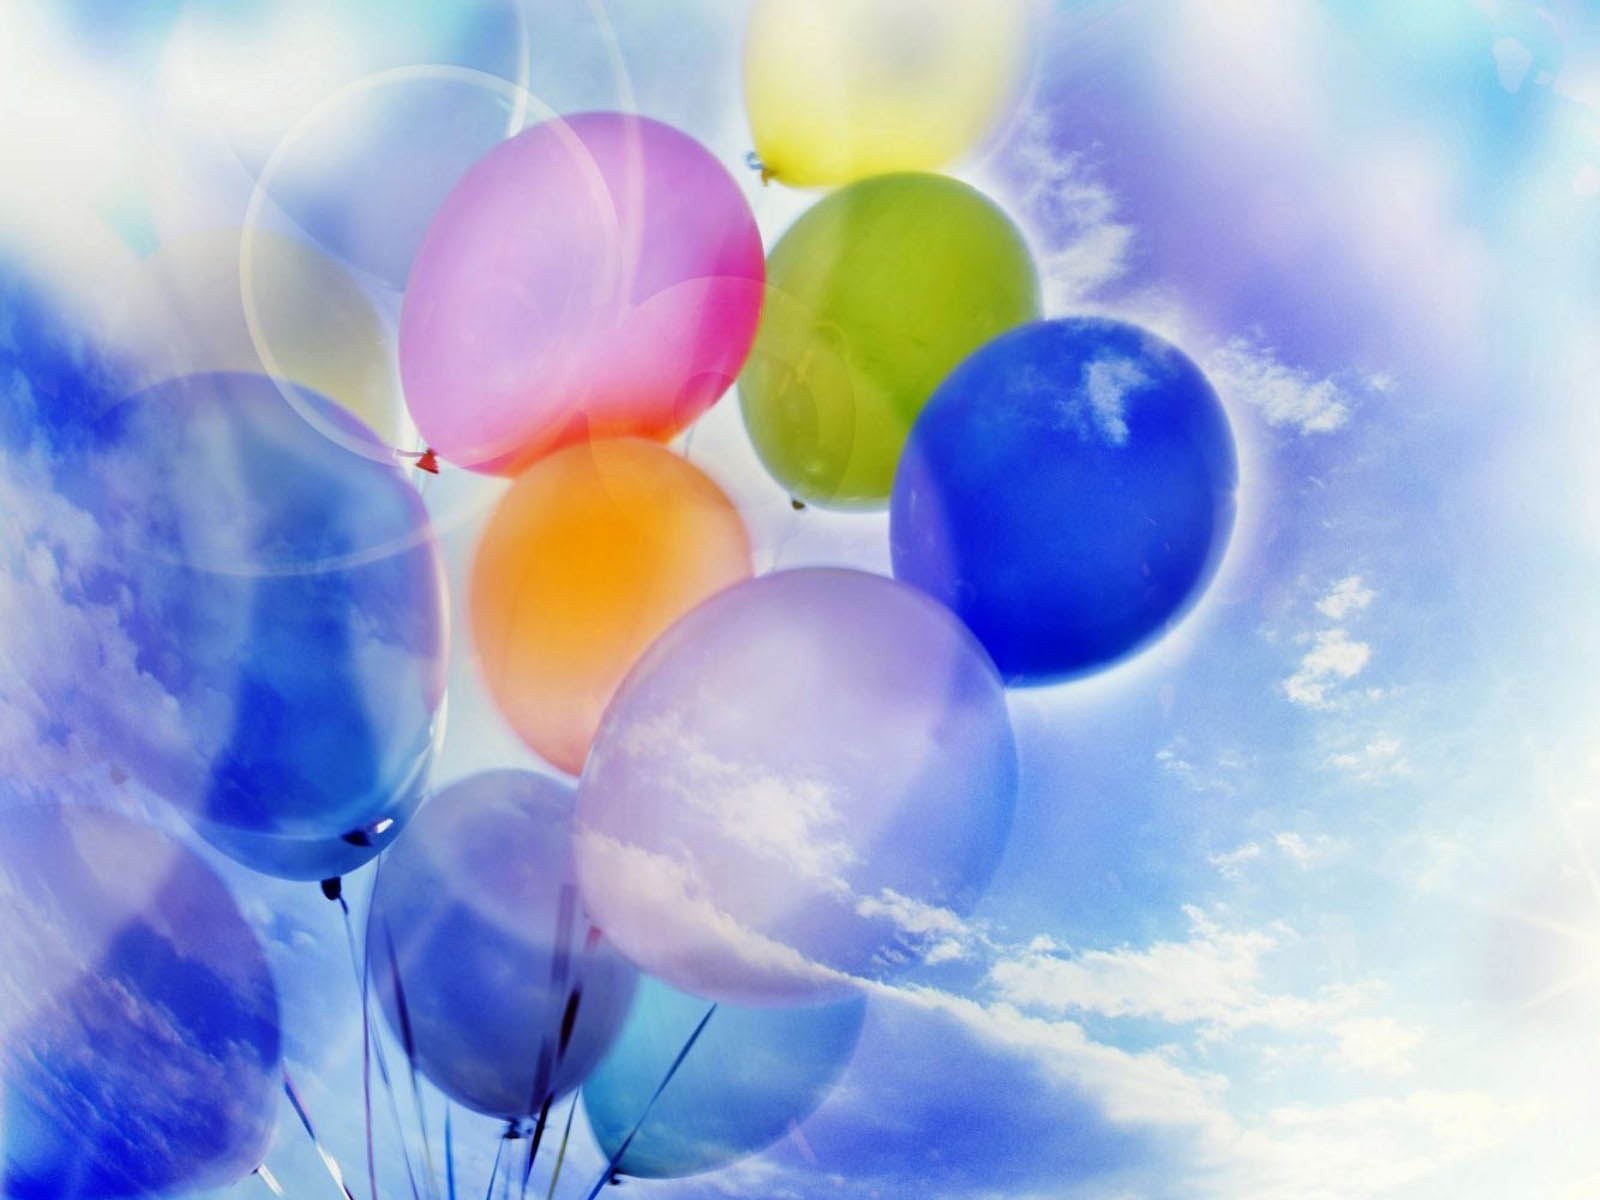 balloons background wallpaper-#3